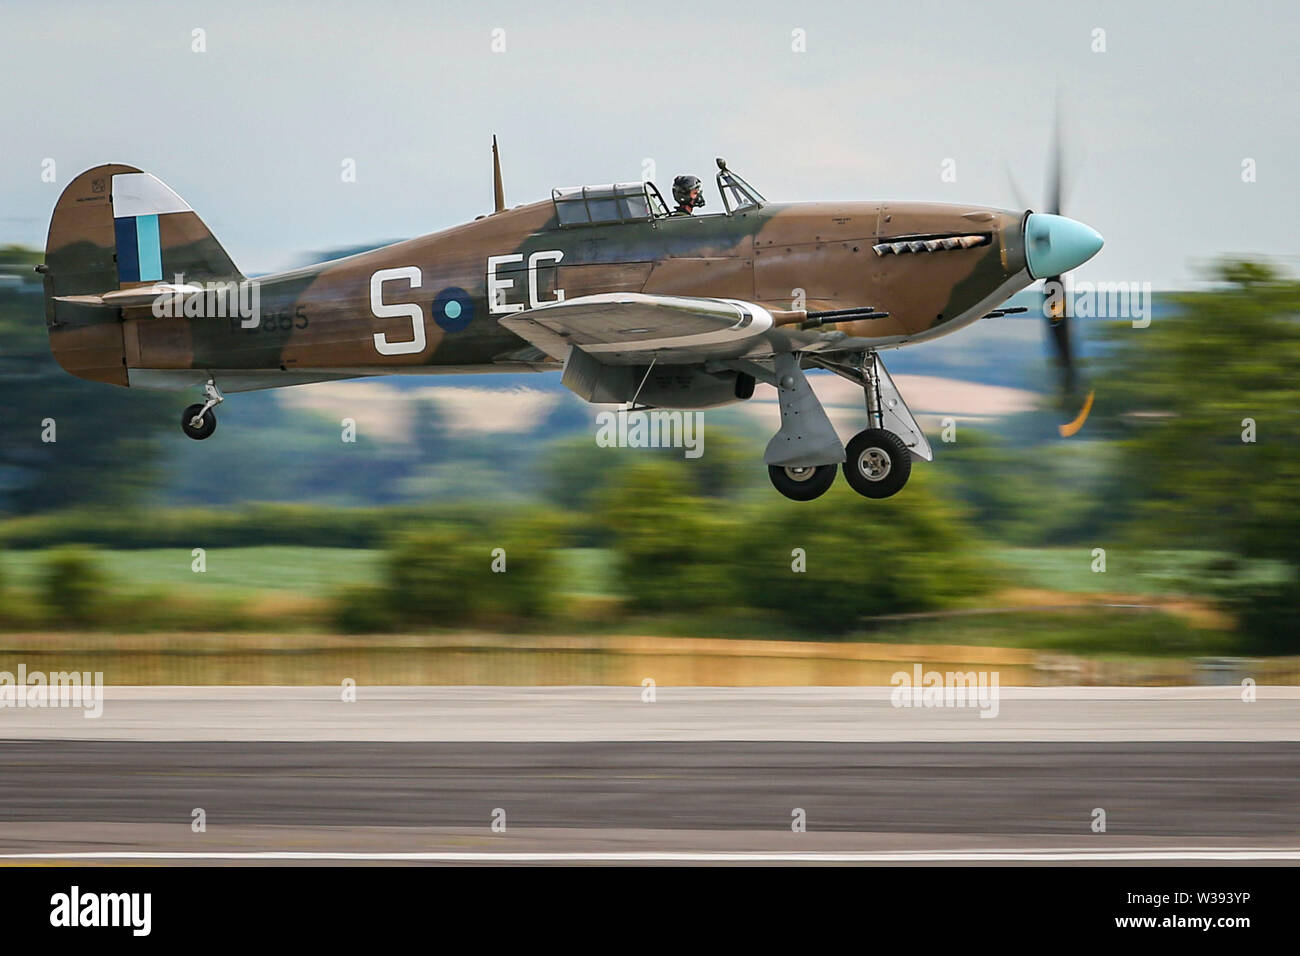 Yeovilton, UK. 13th July, 2019. A Hurricane of the Battle of Britain Memorial Flight, landing at the airshow in Yeovilton. Credit: Matthew Lofthouse/Alamy Live News Stock Photo